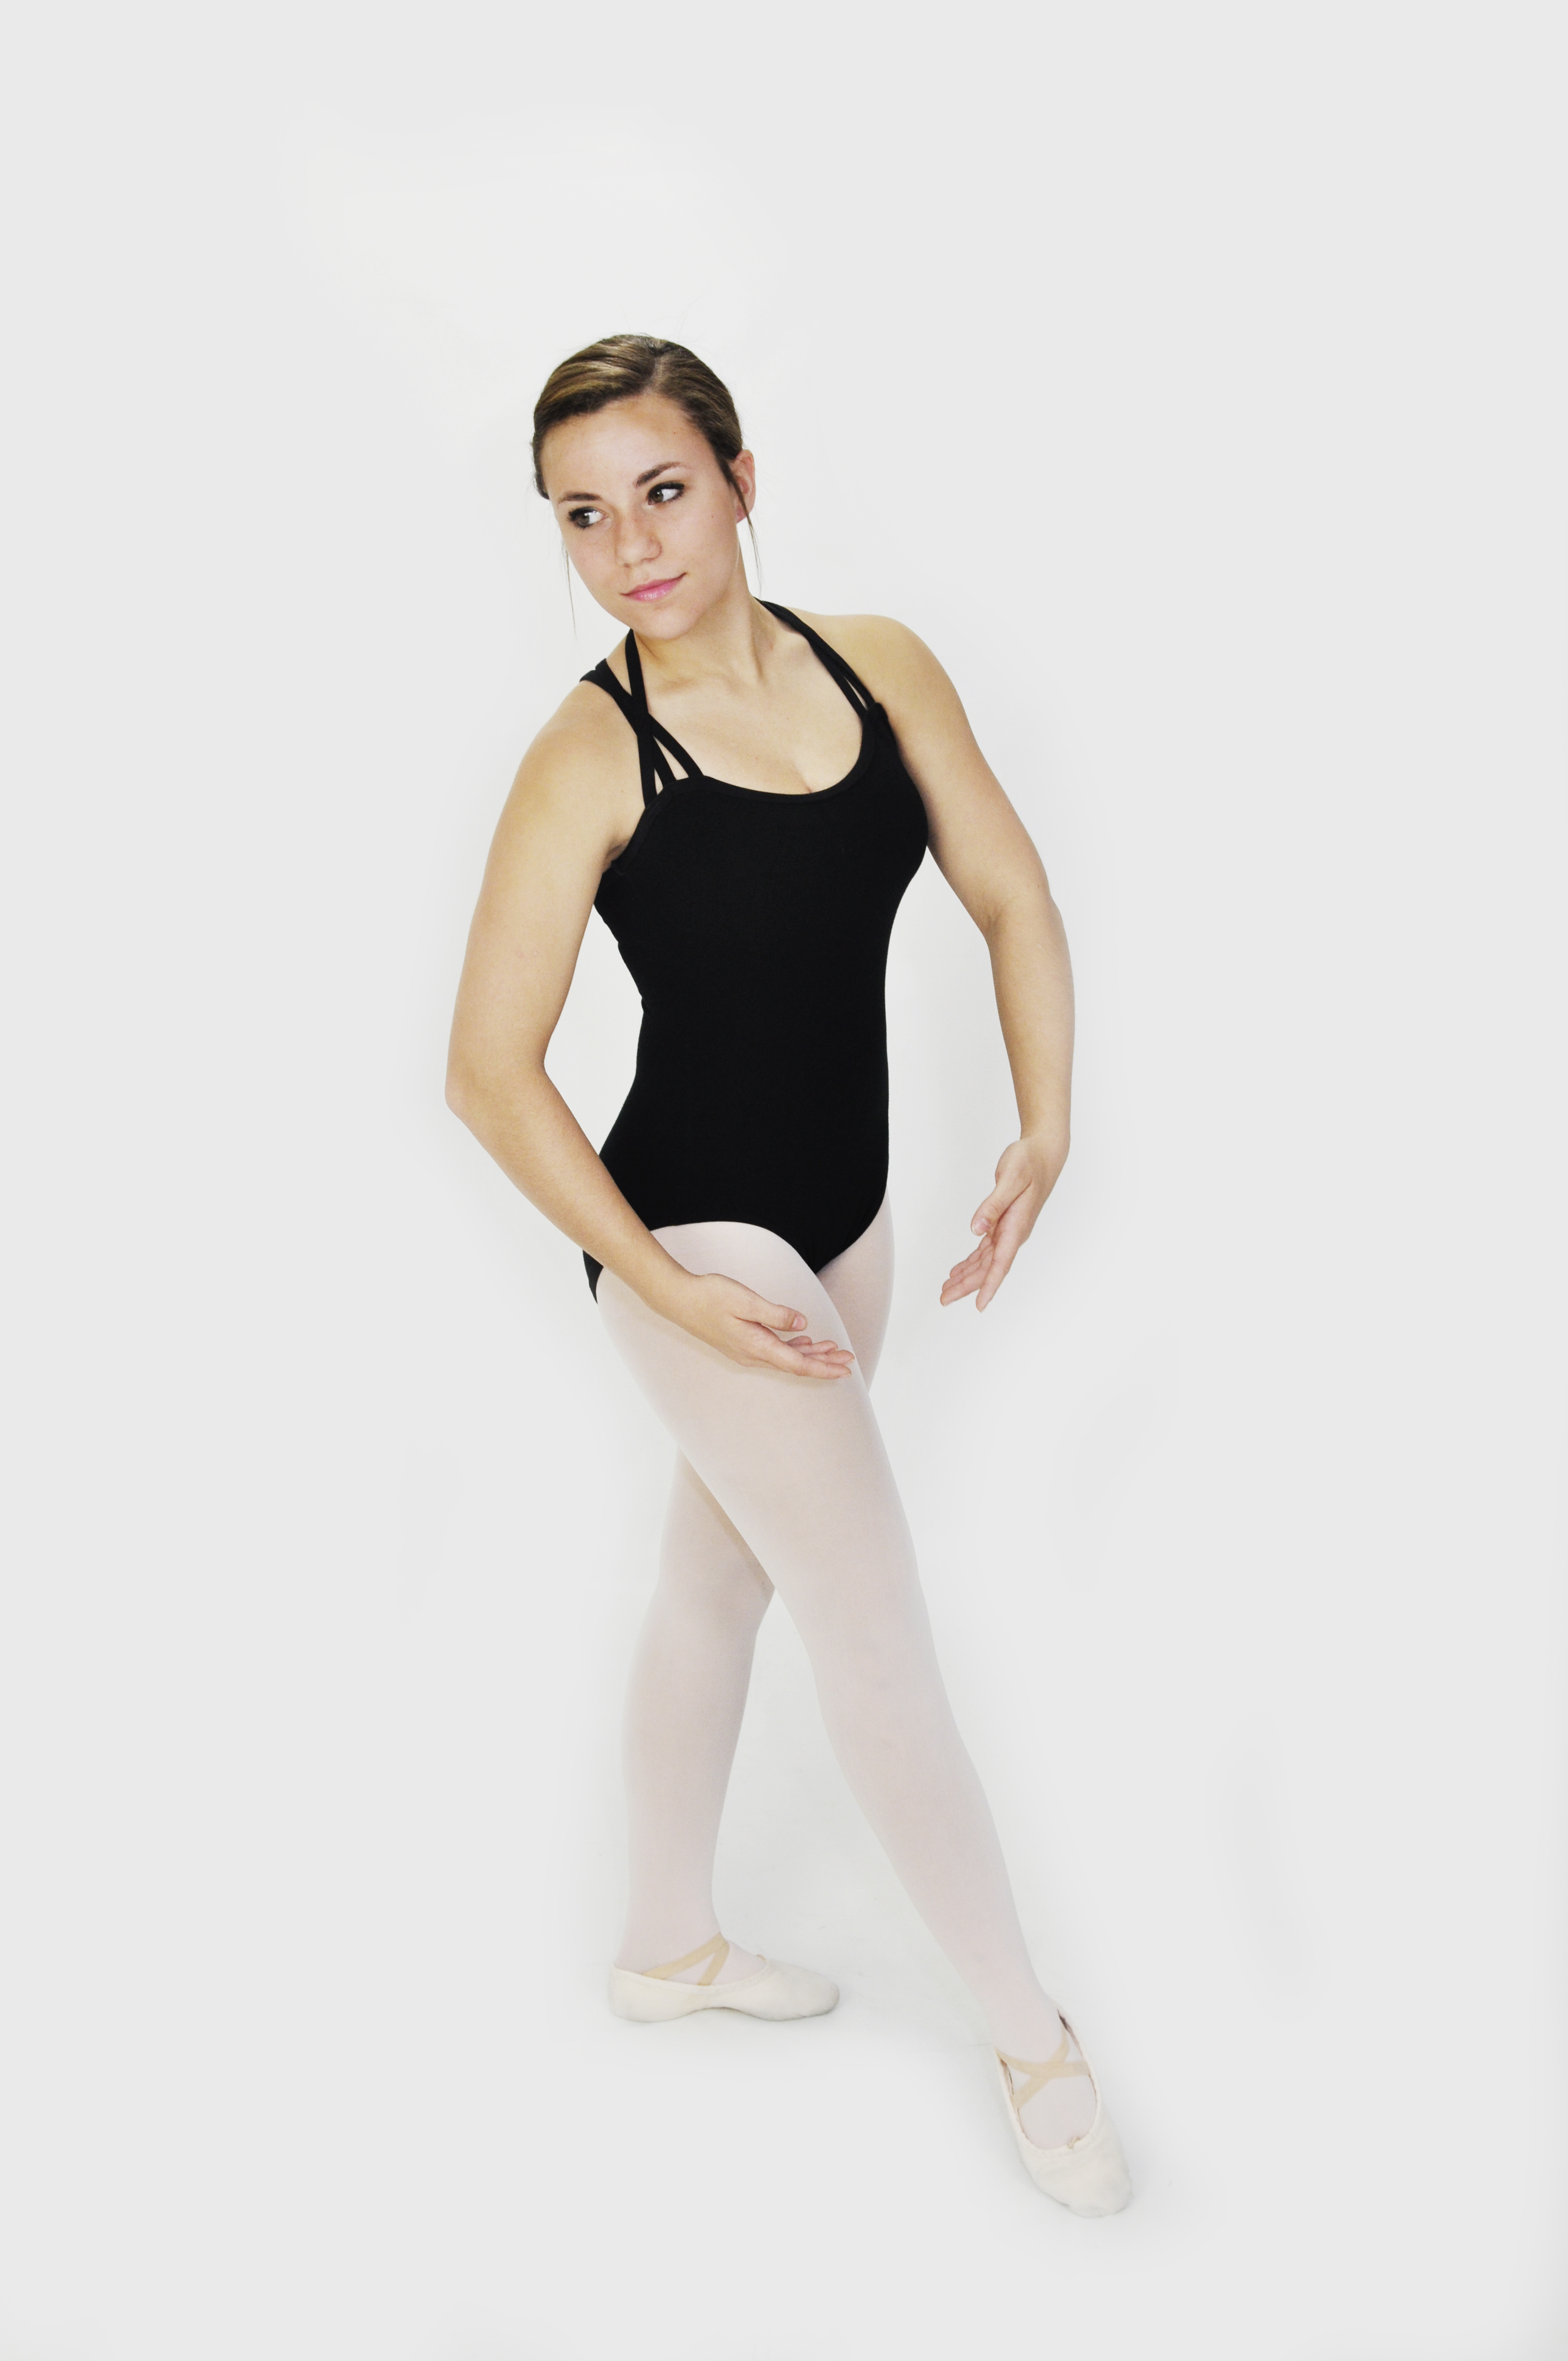 b5fffac276aa All female ballet students must wear a solid black leotard in any style,  Body Wrappers theatrical pink tights, and pink canvas ballet shoes.